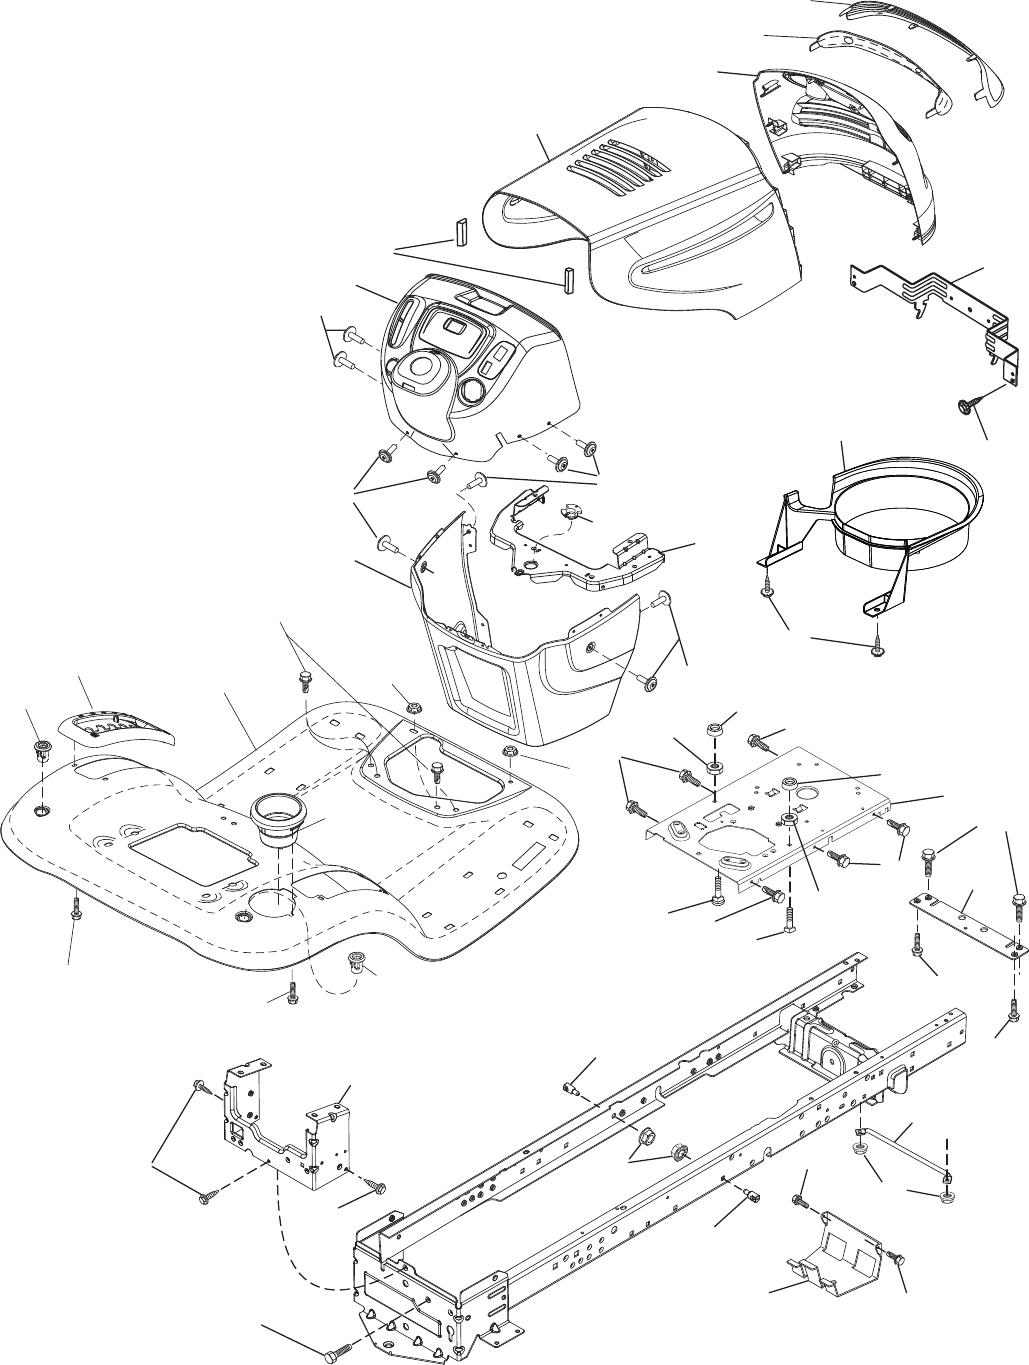 Page 6 of Ariens Lawn Mower 936038 User Guide